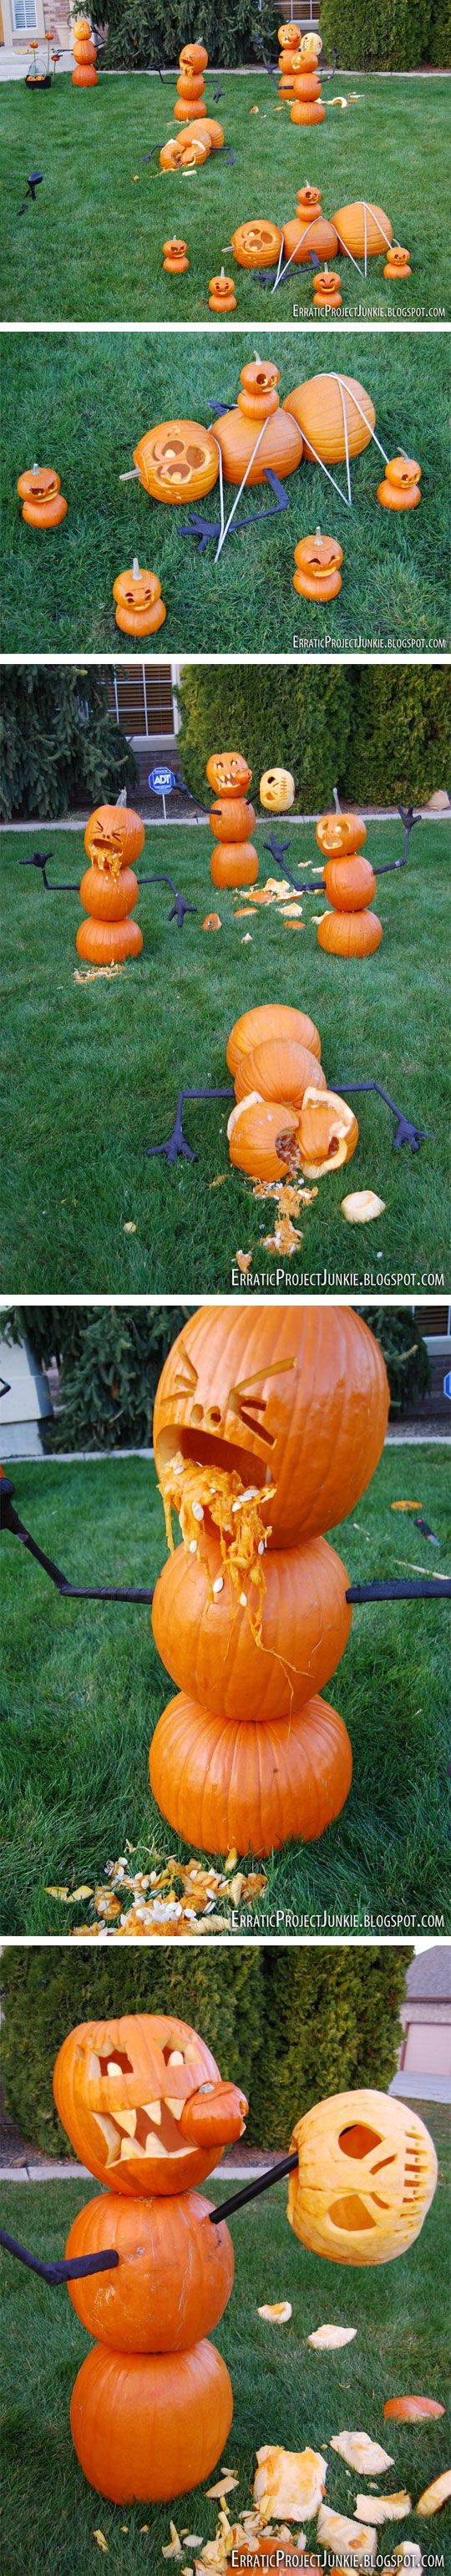 Pumpkin Massacre - i so want to do this some day